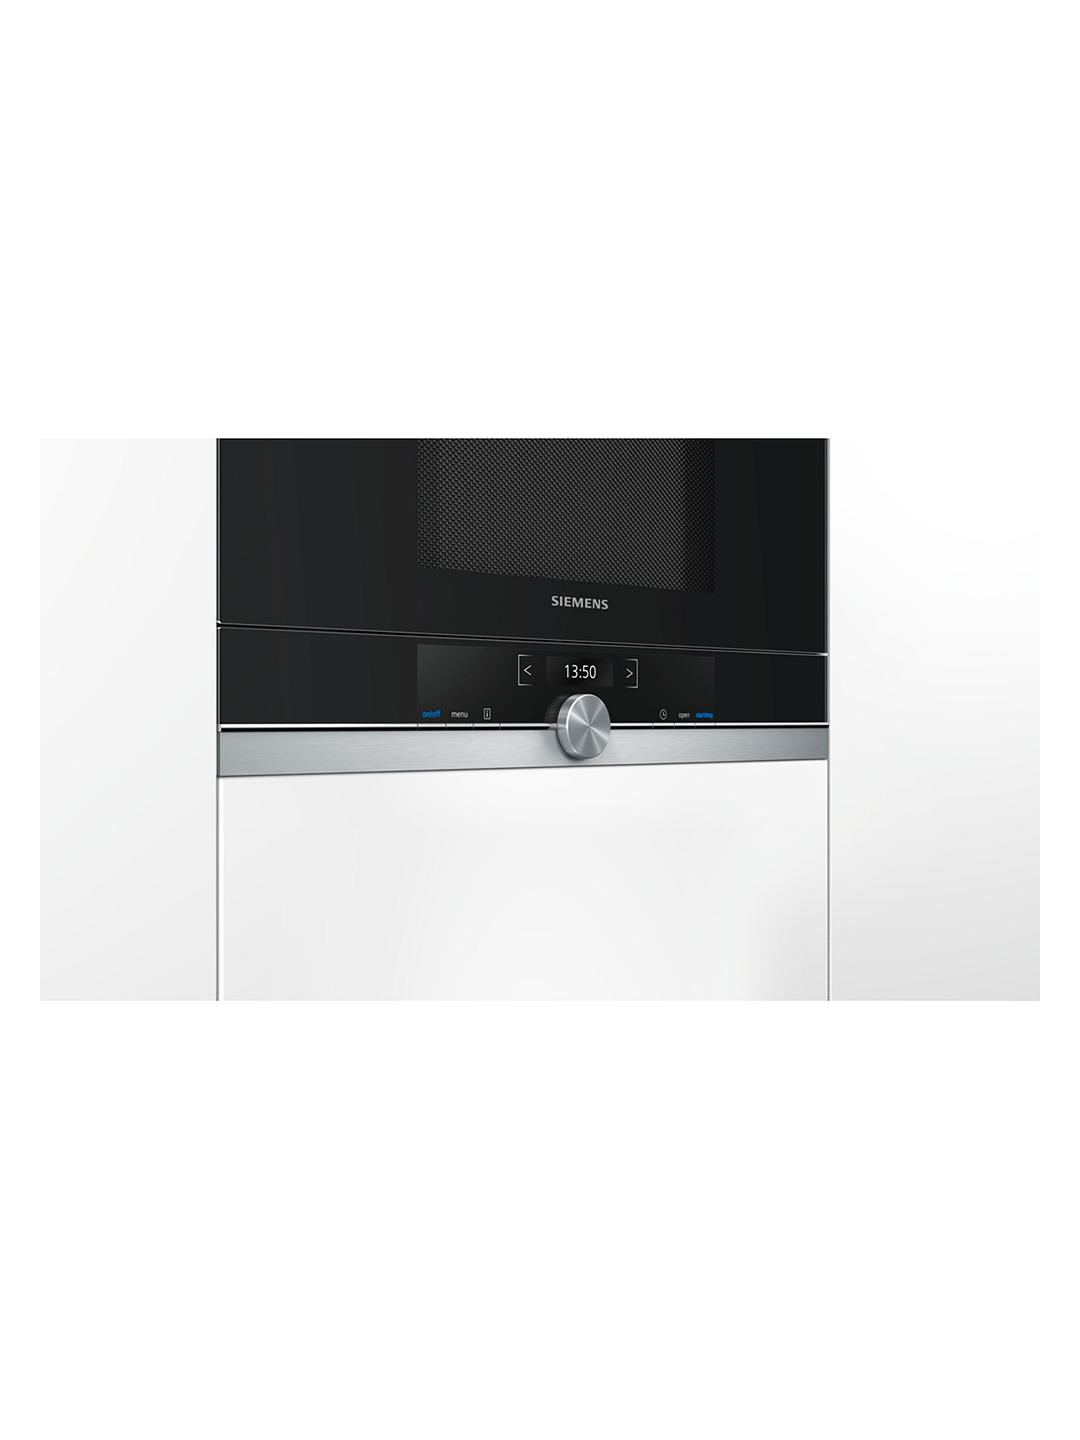 Buy Siemens BF634LGS1B Built-In Microwave, Stainless Steel / Black Online at johnlewis.com